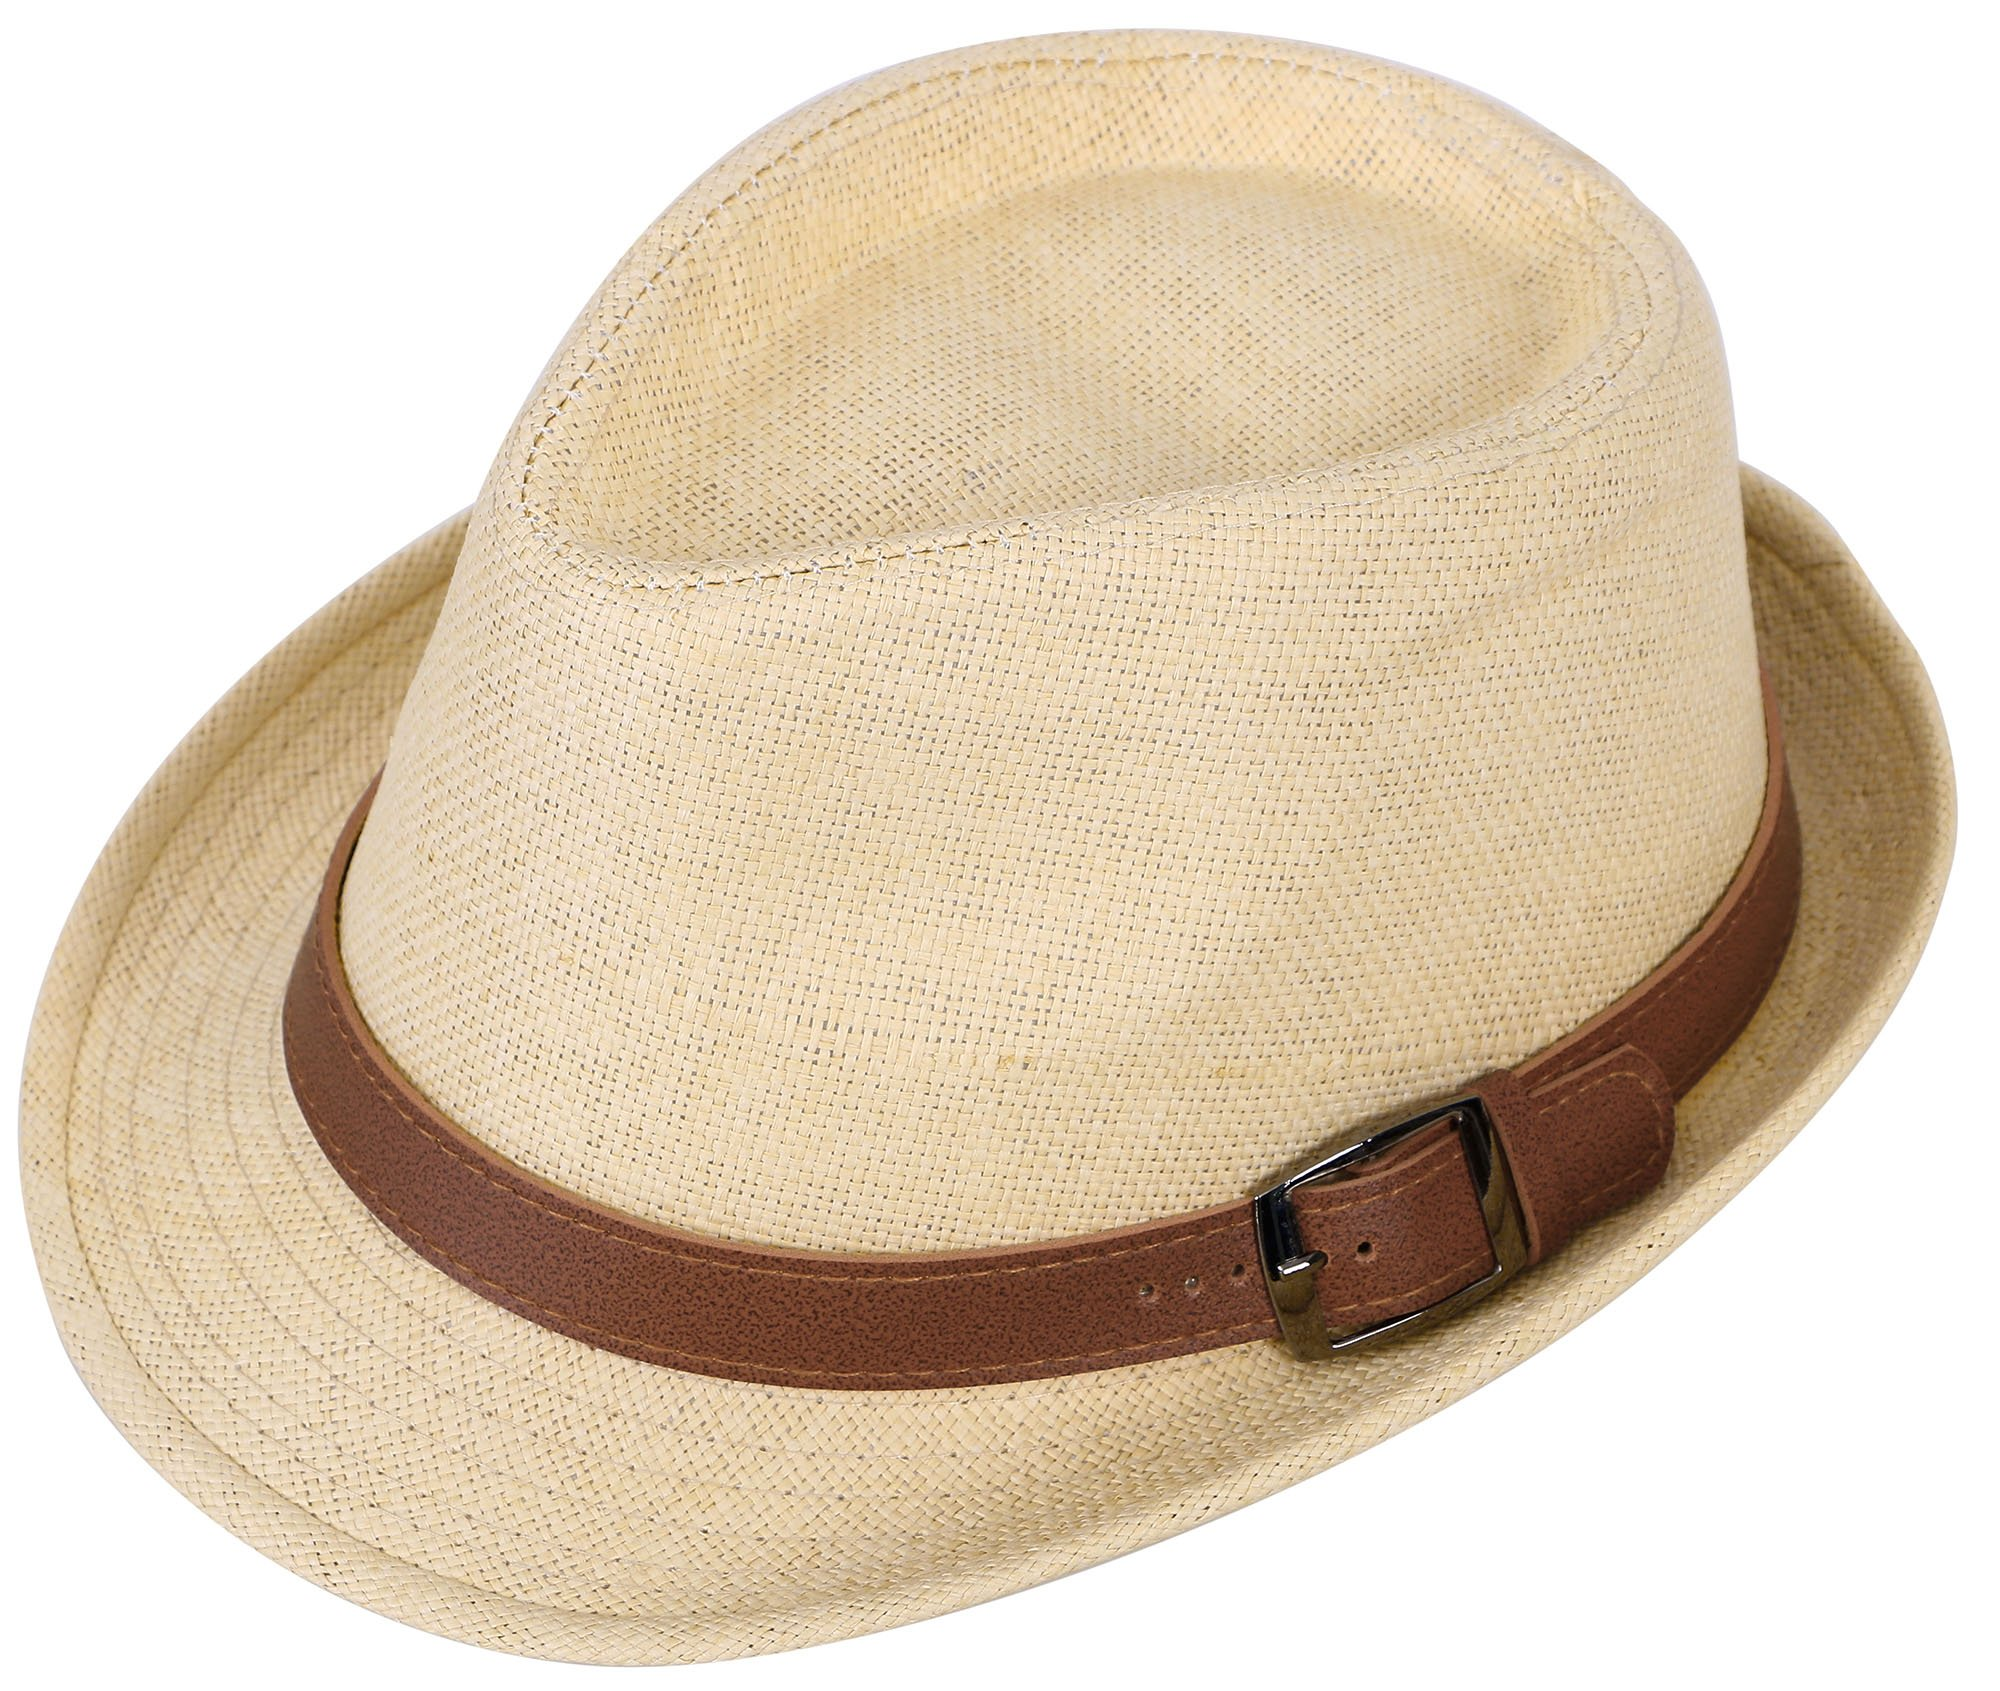 Simplicity Panama Style Fedora Straw Sun Hat with Leather Belt,Natural LXL